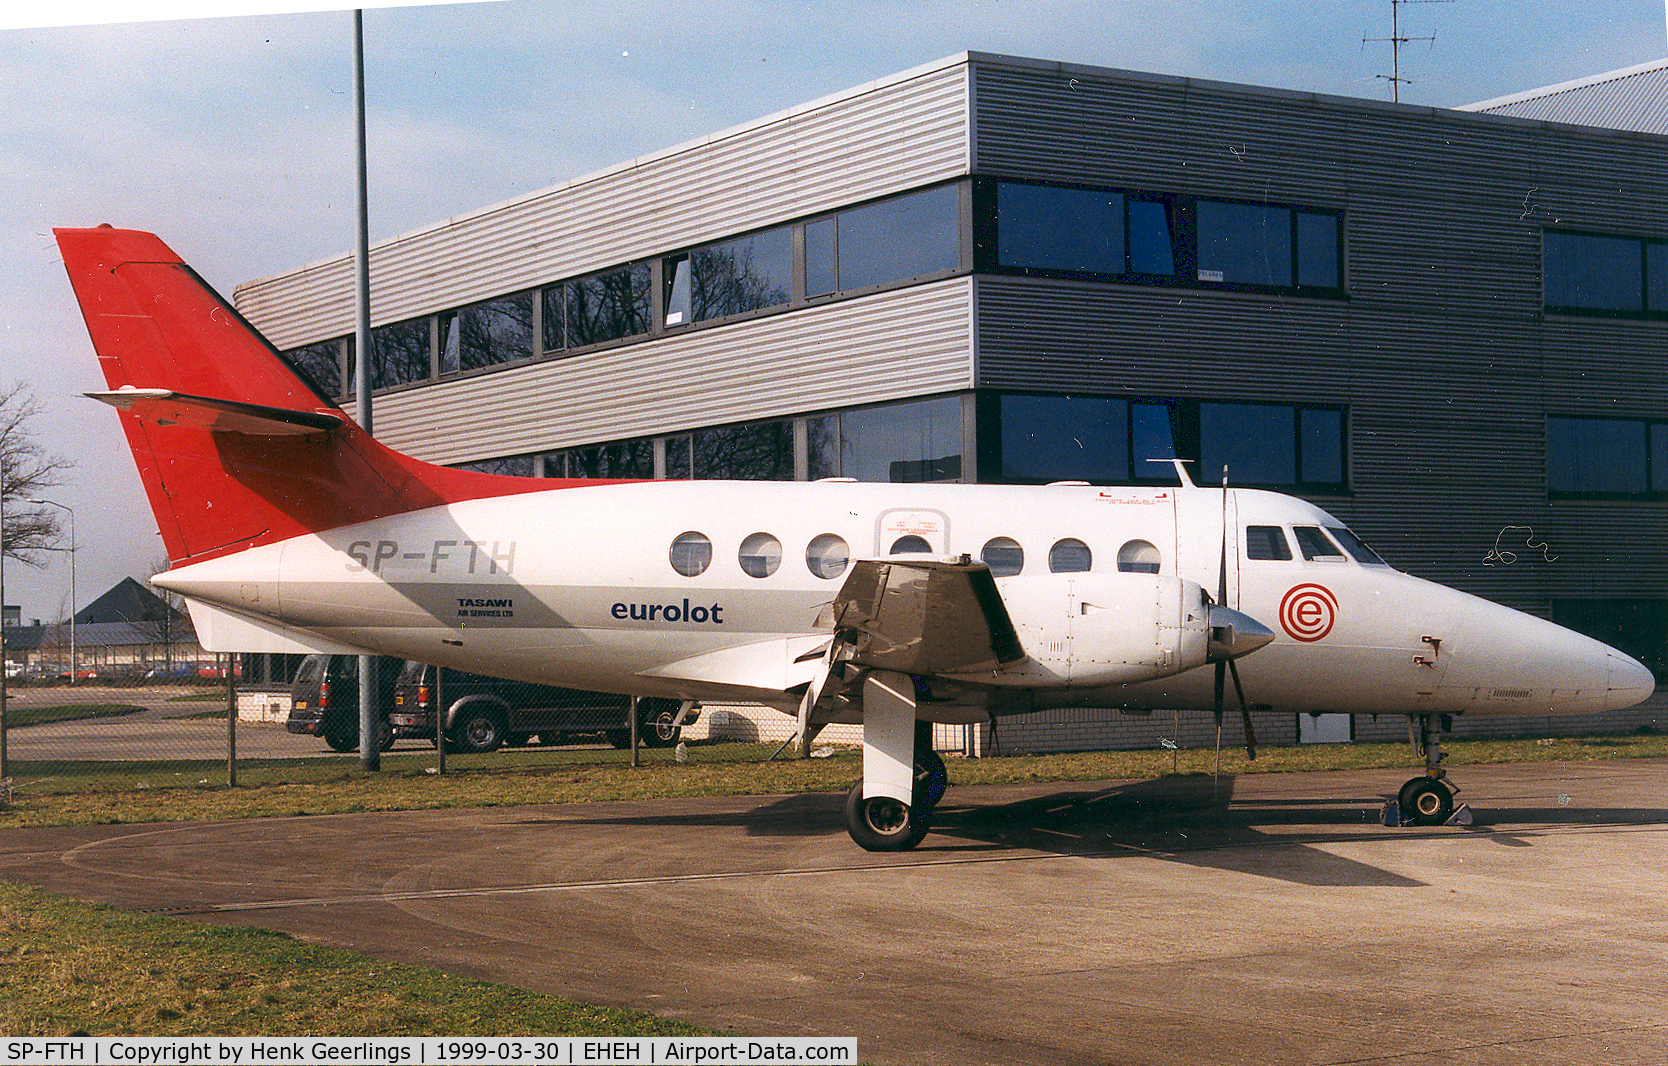 SP-FTH, British Aerospace BAe-3102 Jetstream 31 C/N 649, Eurolot - Tasawi Air Services ; ex PH-KJC of Netherlines